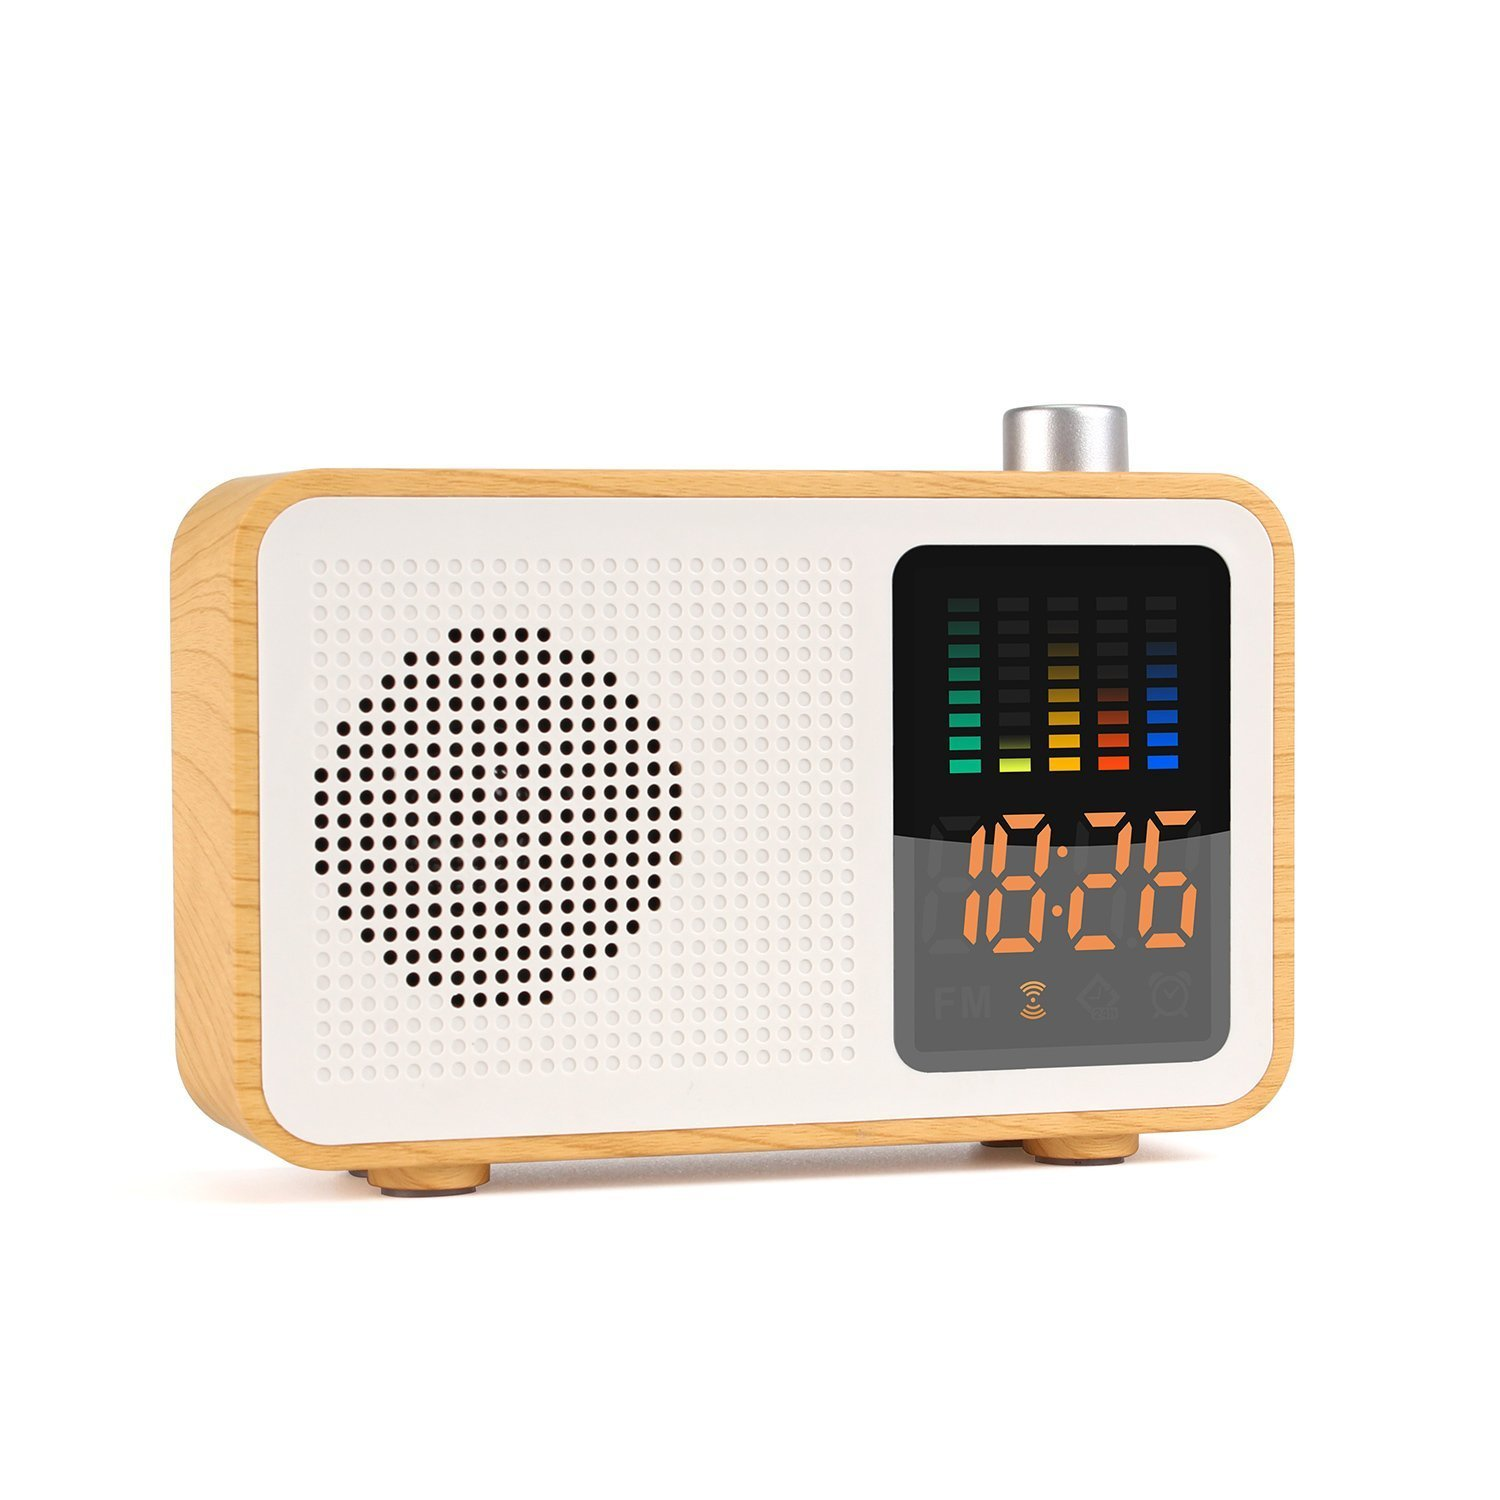 Sysmarts Wooden Retro Stereo Wireless Portable Bluetooth Speakers FM Radio Digital Alarm Clock Supported TF Card/AUX-in USB Charging (Maple Wood)